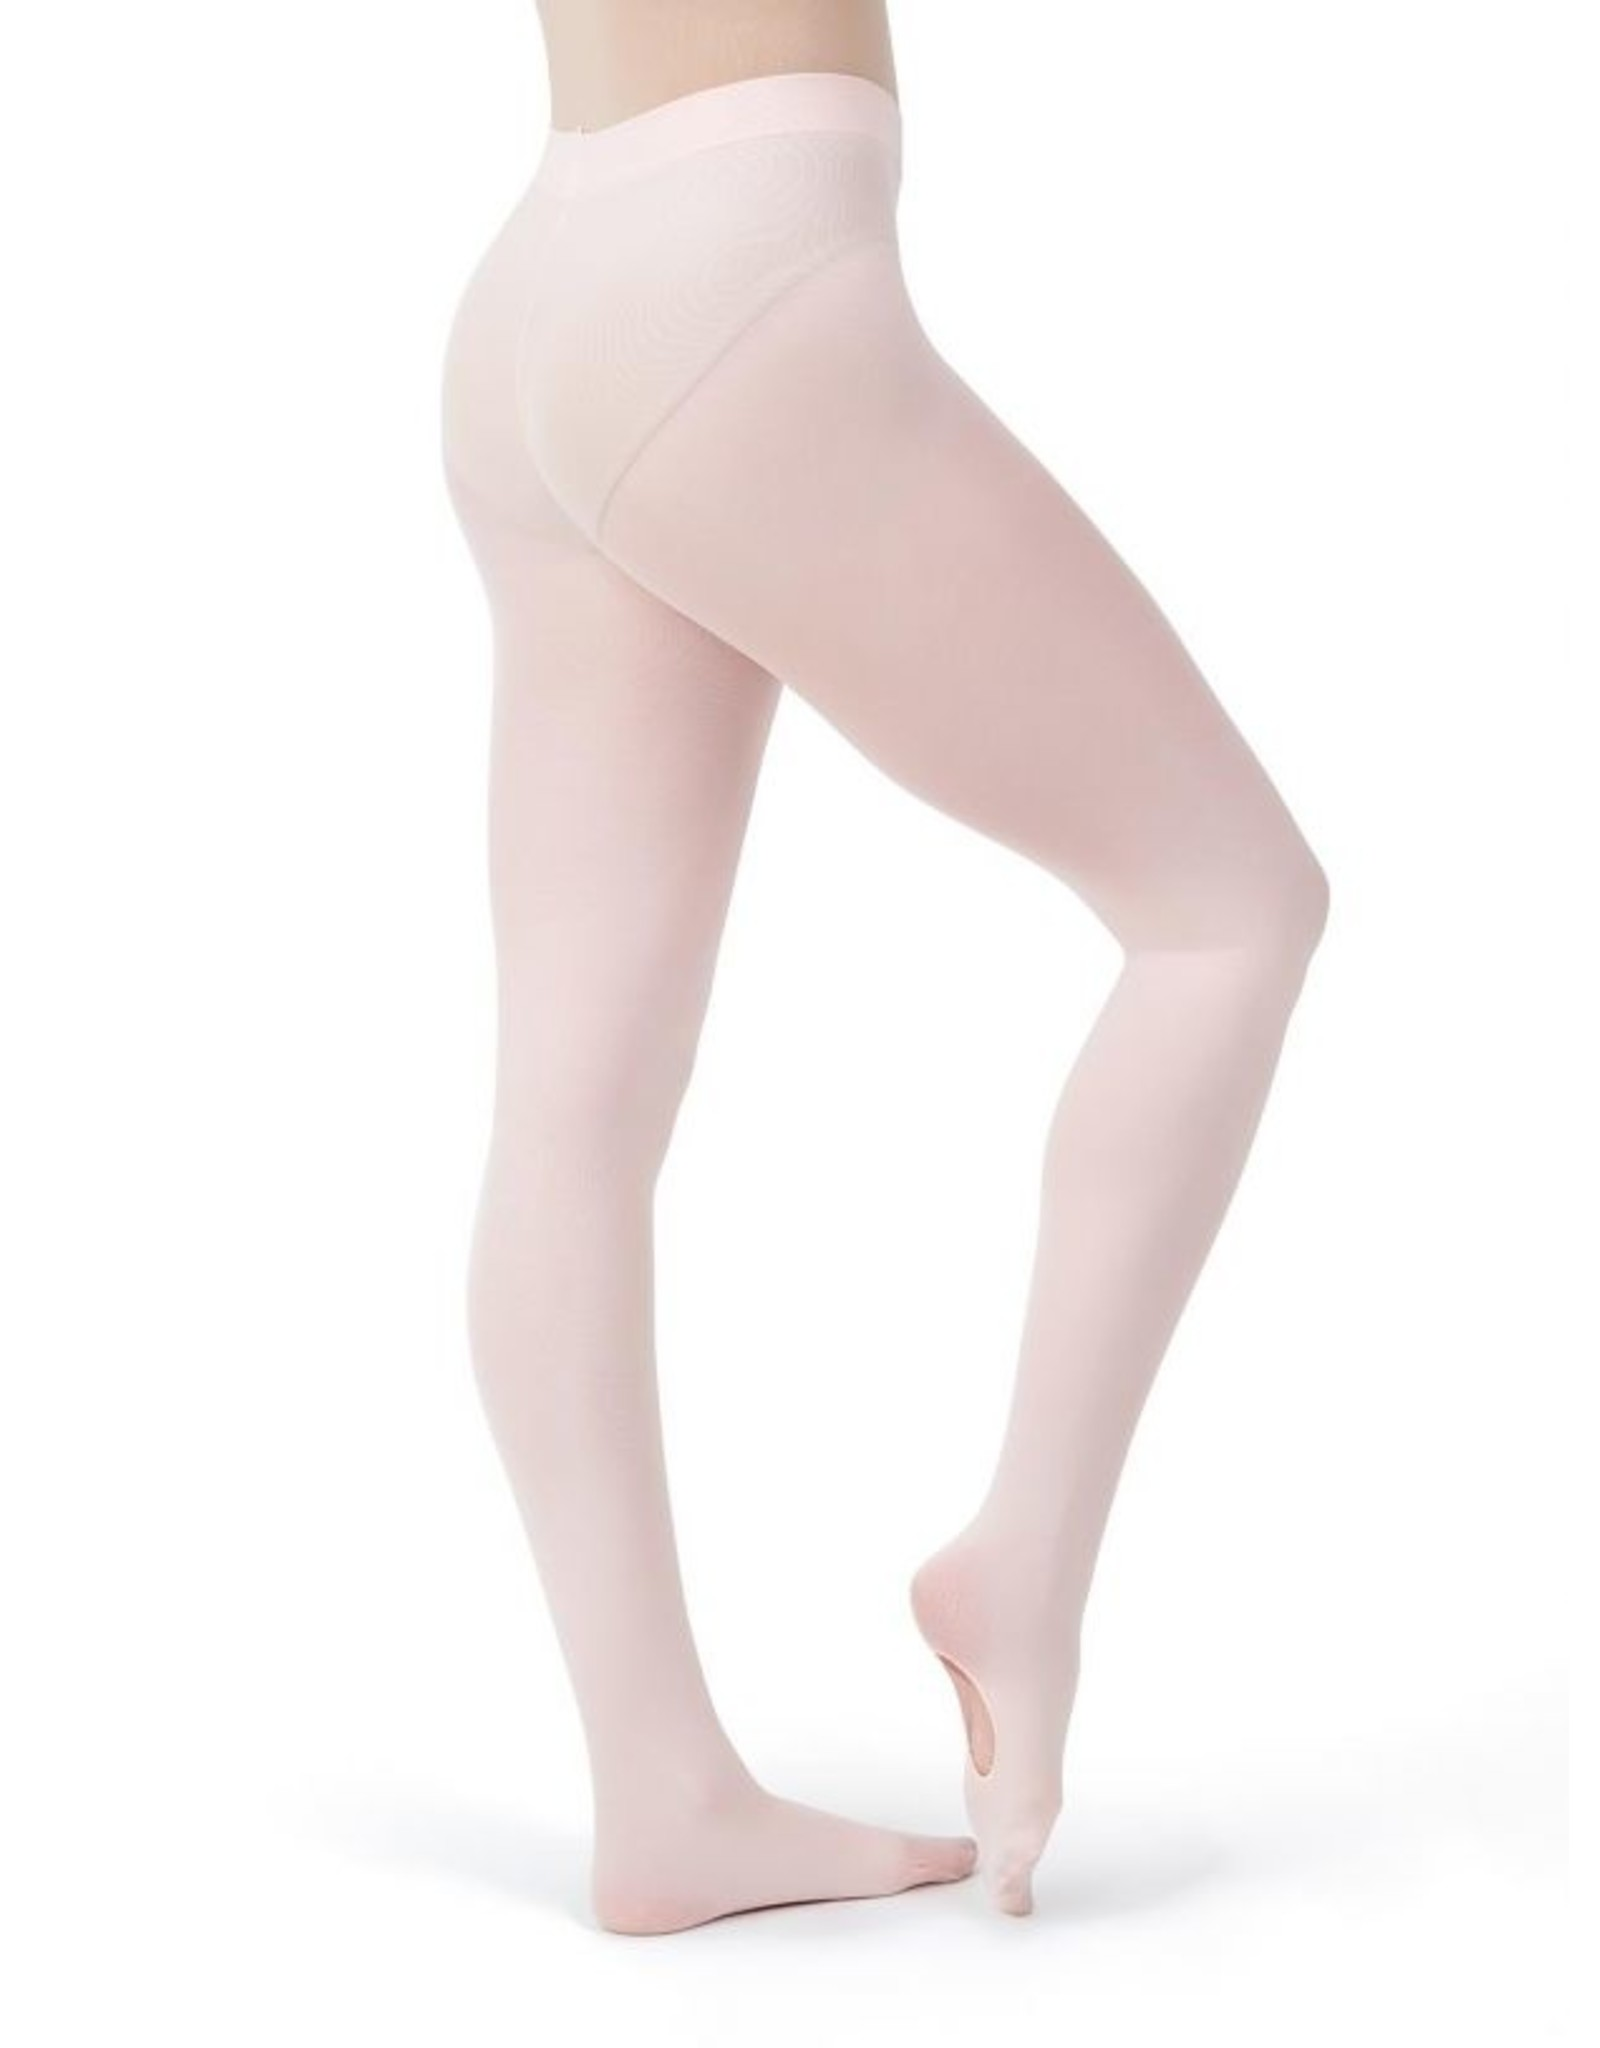 TODDLER CAPEZIO ULTRA SOFT TRANSITION TIGHTS - 1916C